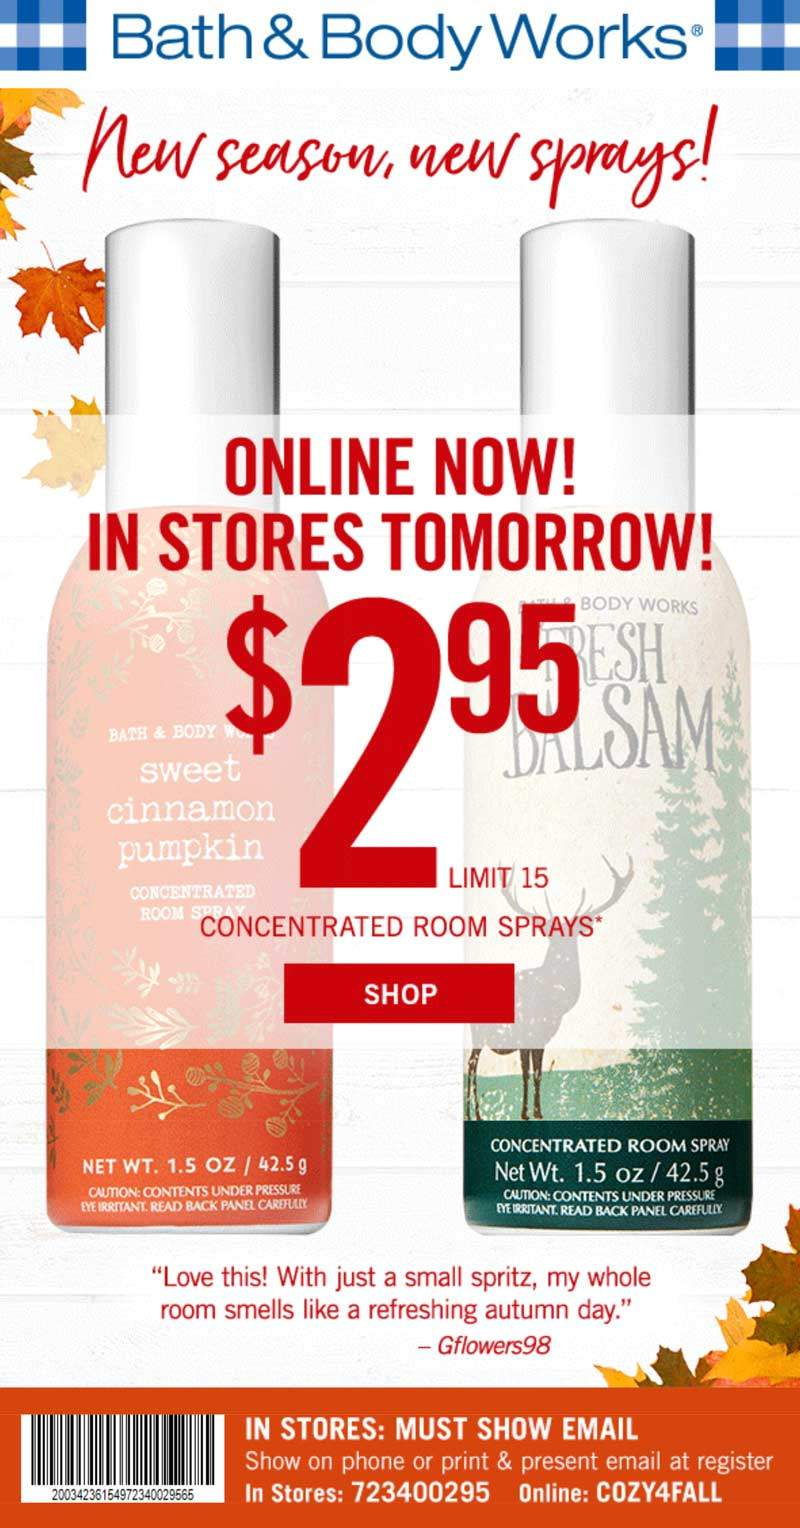 Bath & Body Works Coupon February 2020 $3 room sprays today at Bath & Body Works, or online via pomo code COZY4FALL